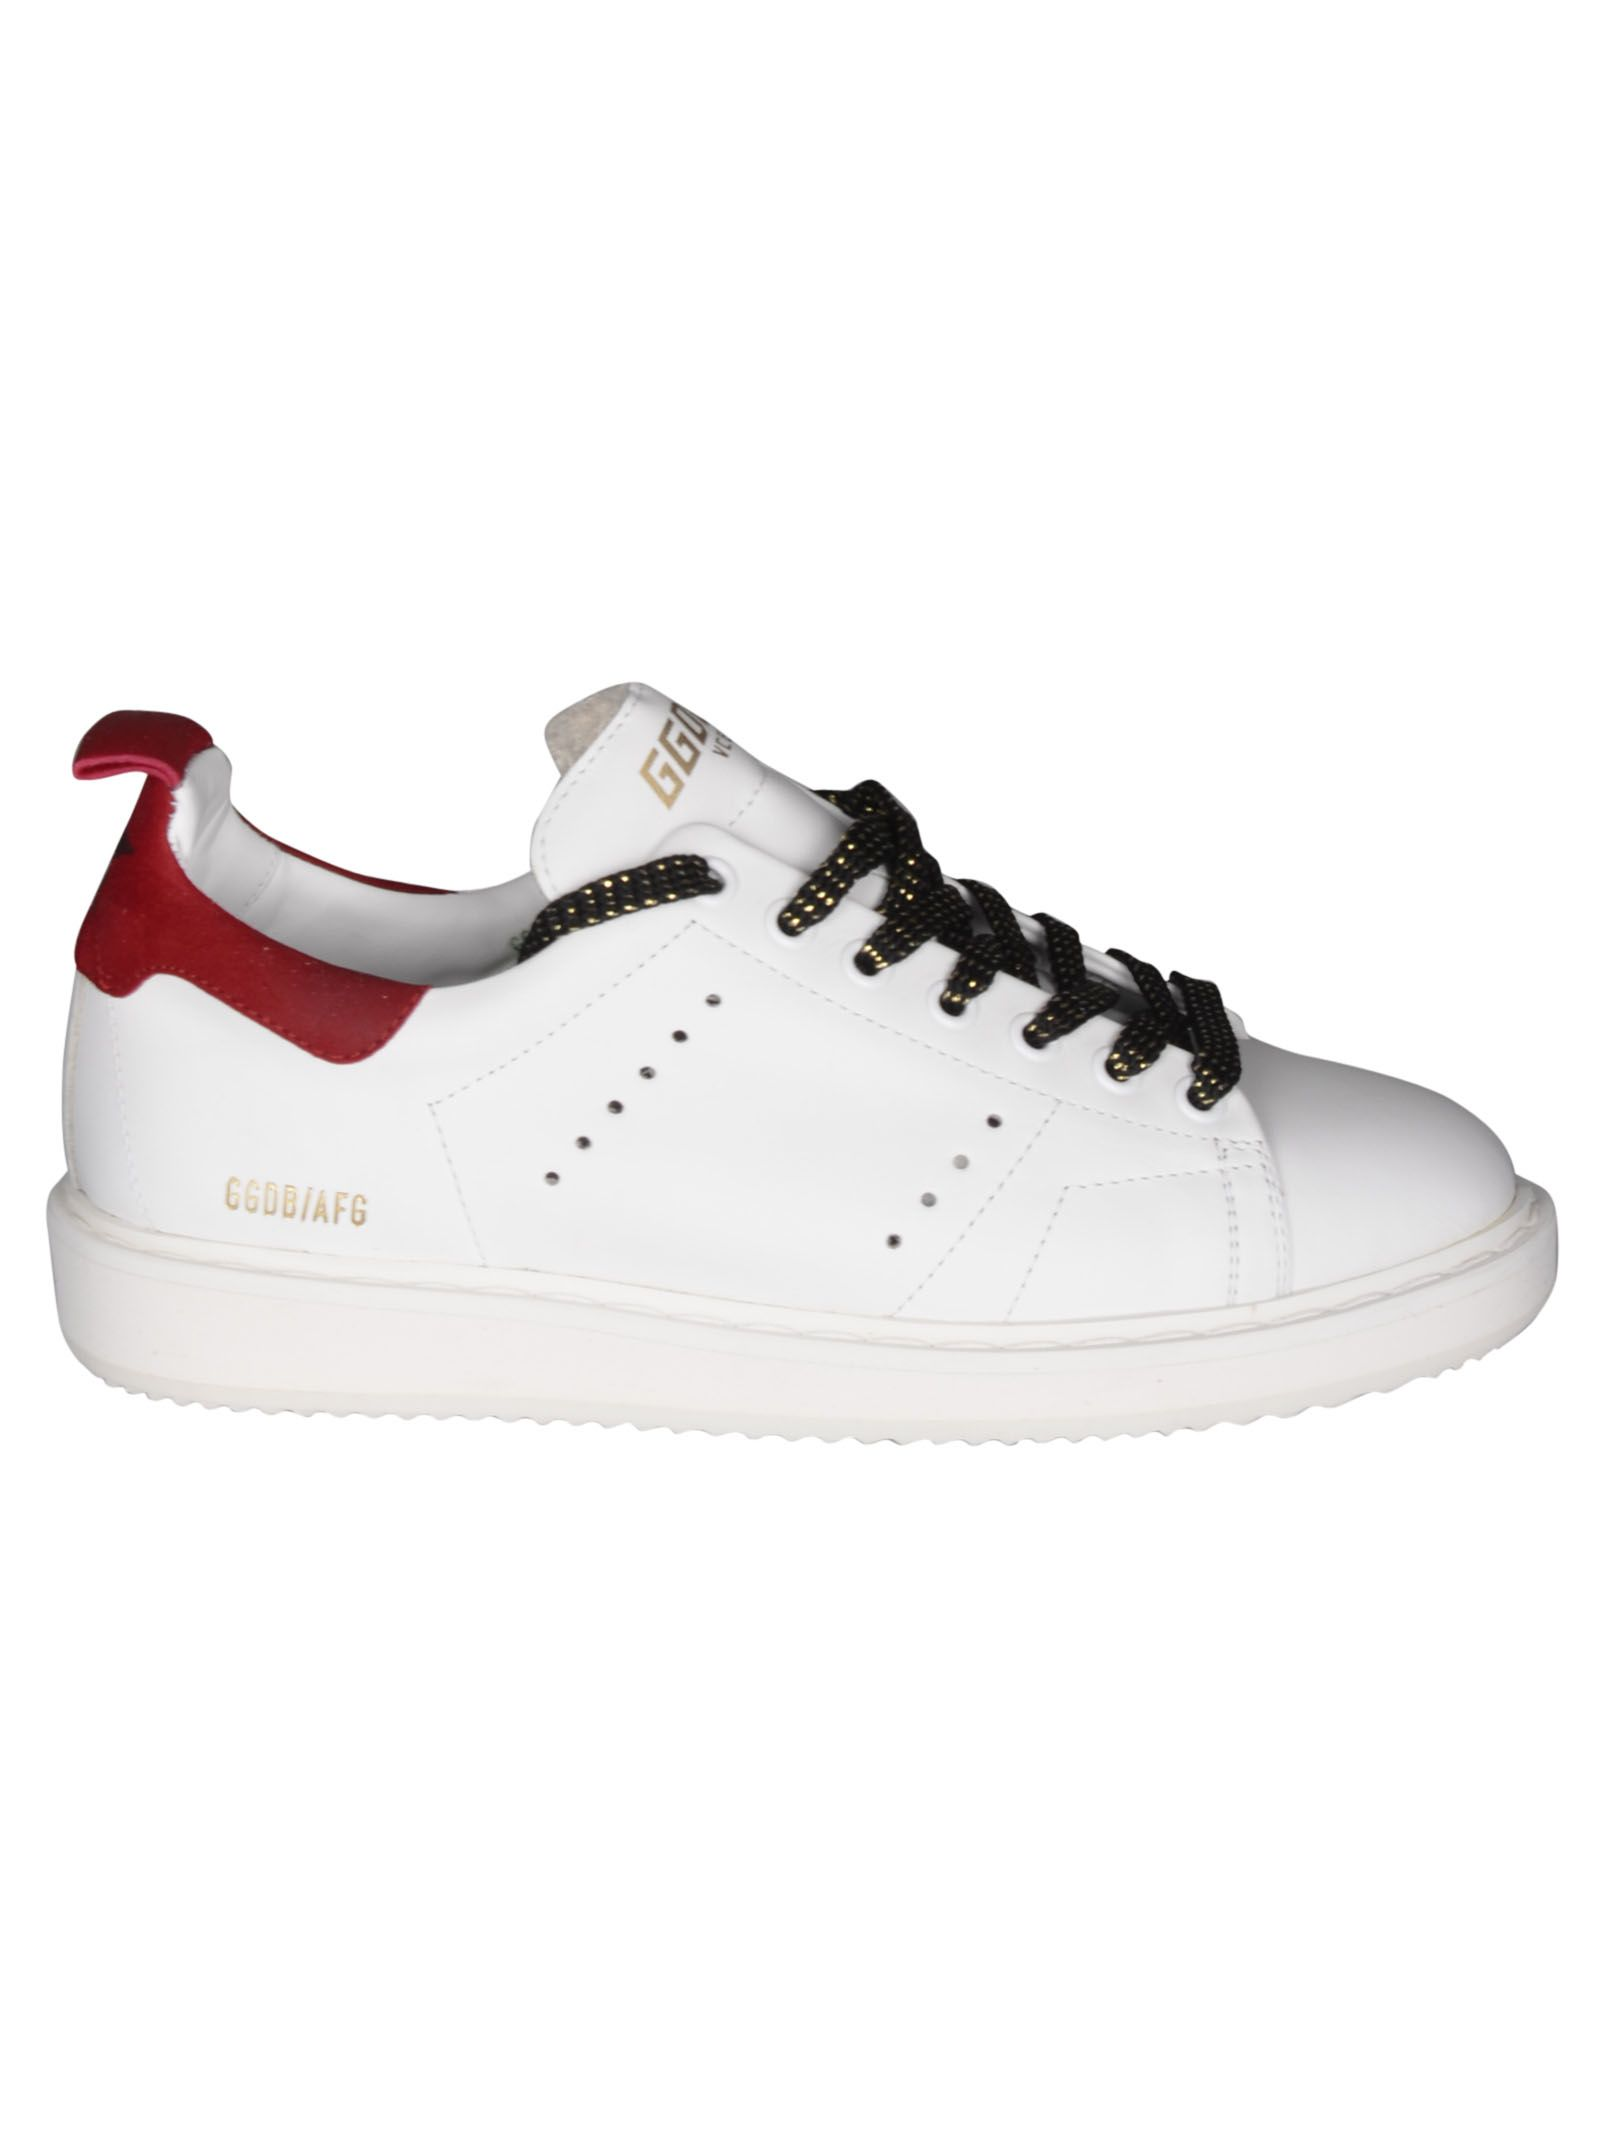 Starter Sneakers, White Leather Red Suede